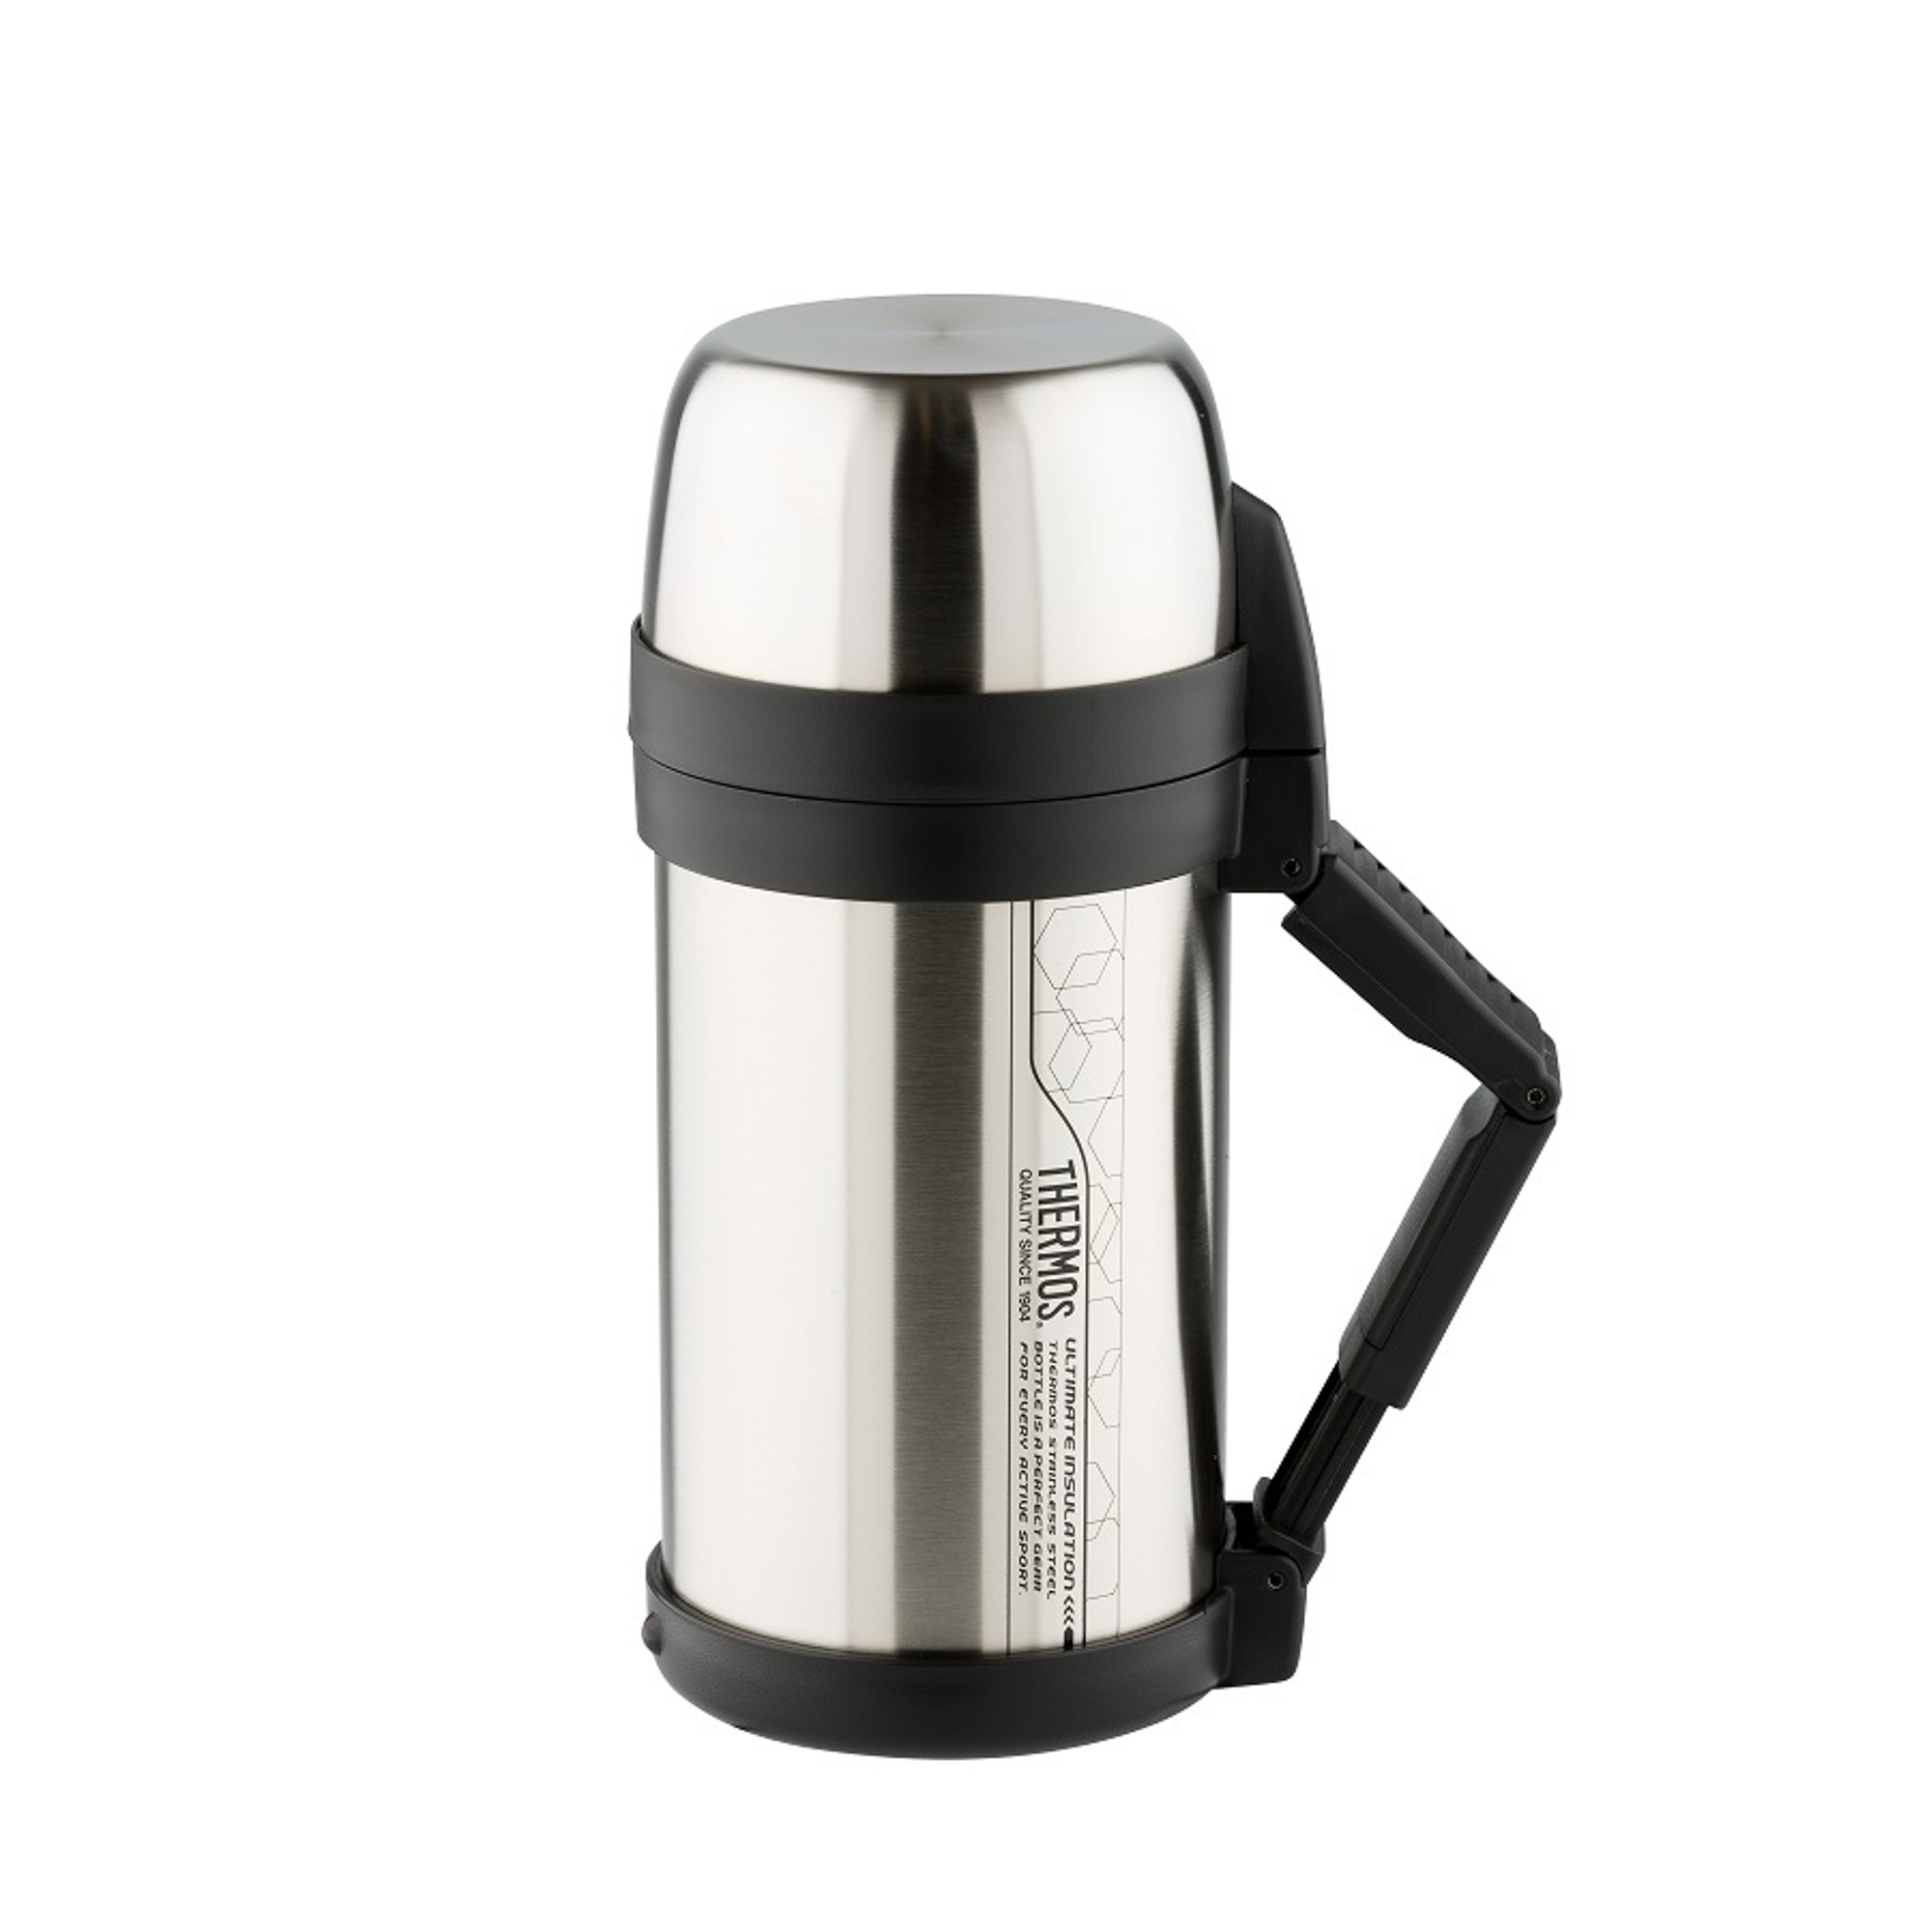 Термос Thermos fdh stainless steel vacuum flask 1.65л